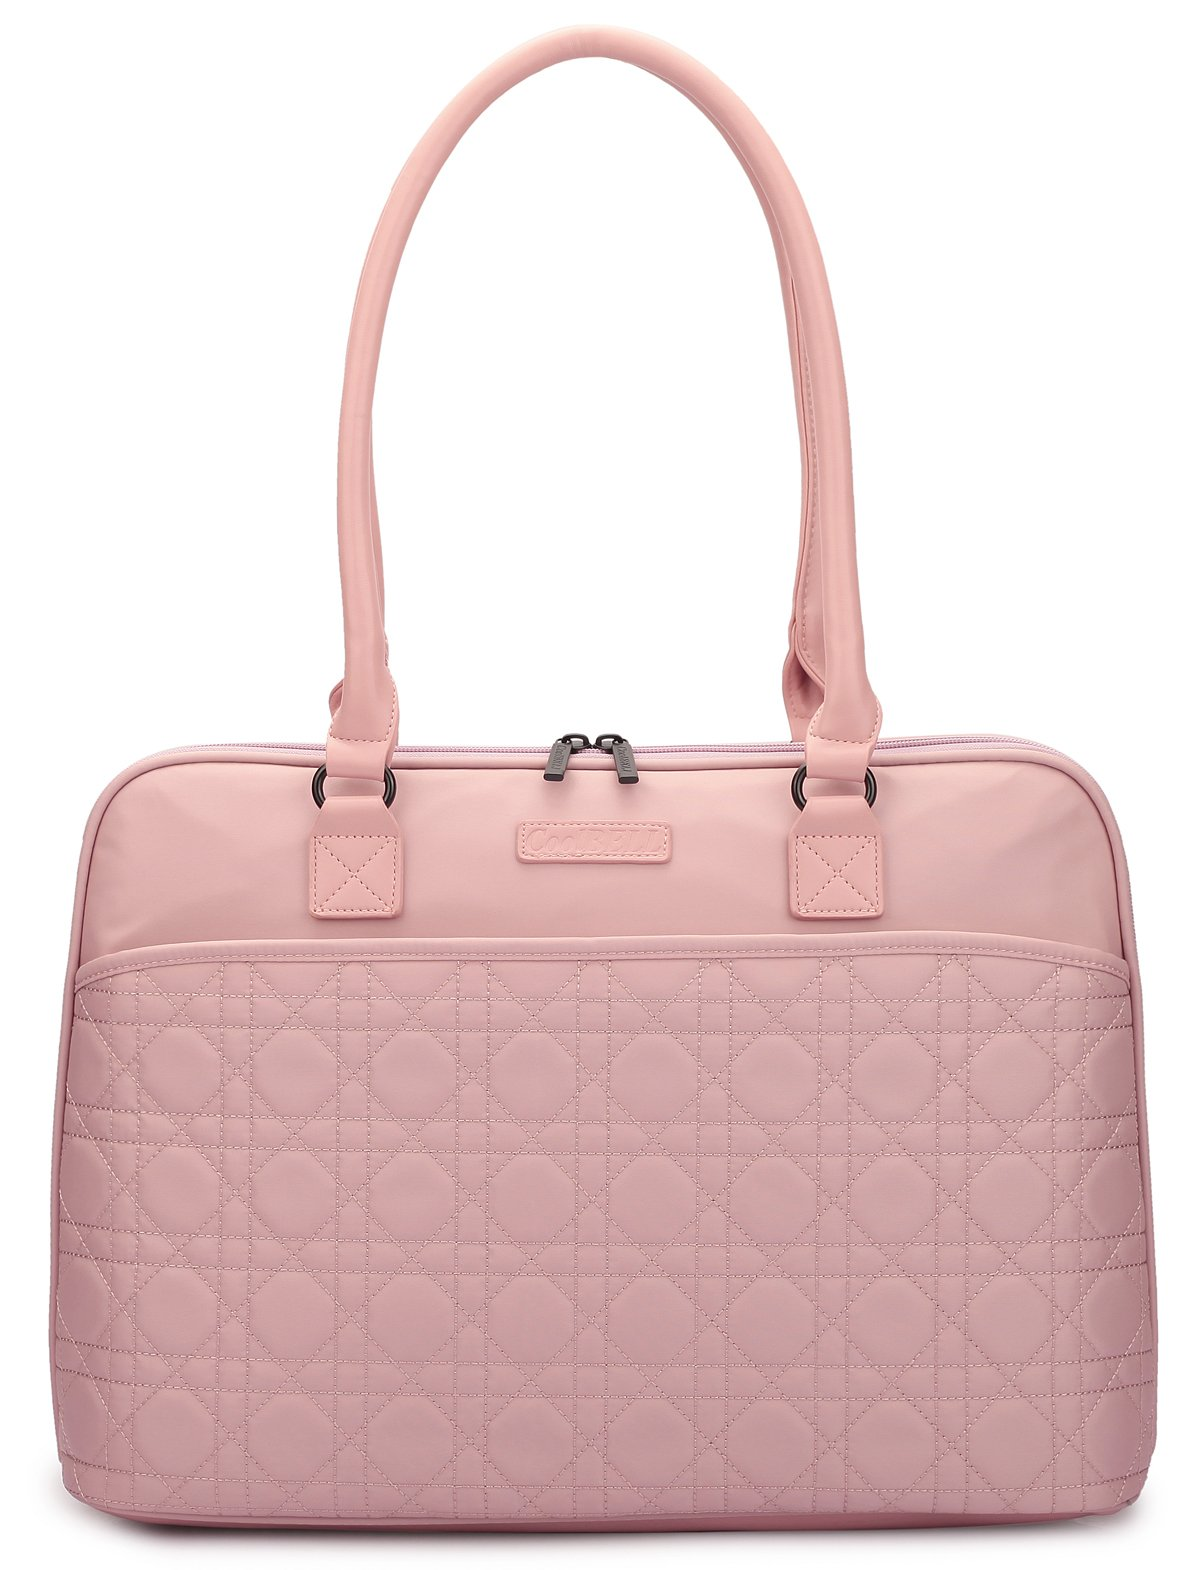 CoolBELL 15.6 Inch Laptop Tote Bag Women Handbag Nylon Briefcase Classic Shoulder Bag For Laptop/Ultra-book/Macbook/Tablet/(Rose Gold)